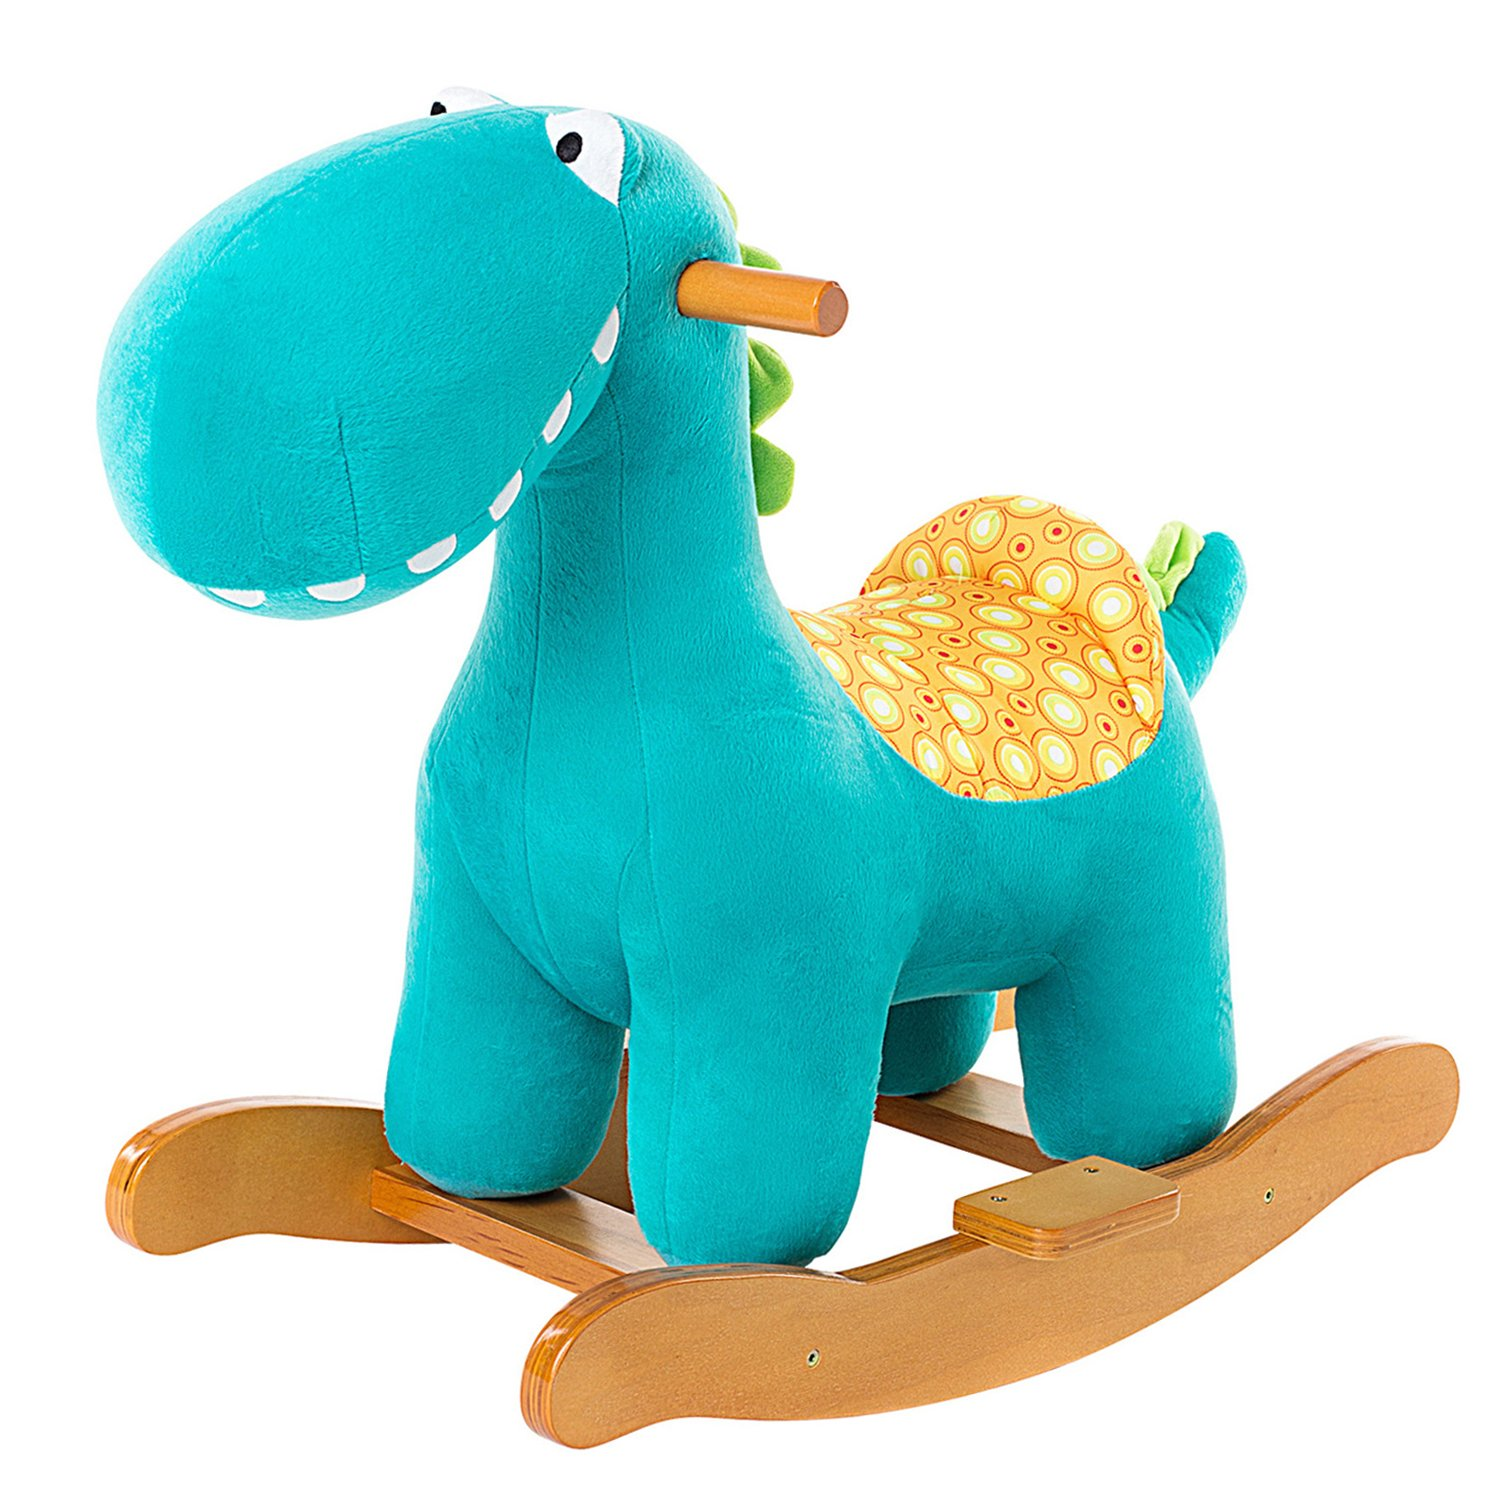 Labebe Child Rocking Horse Toy, Stuffed Animal Rocker Toy, Blue Dinosaur Rocker for Kid 1-3 Years, Wooden Rocking Horse Plush/Outdoor Rocking Horse/Rocker/Animal Ride/Child Rocking Toy/Dragon Rocker